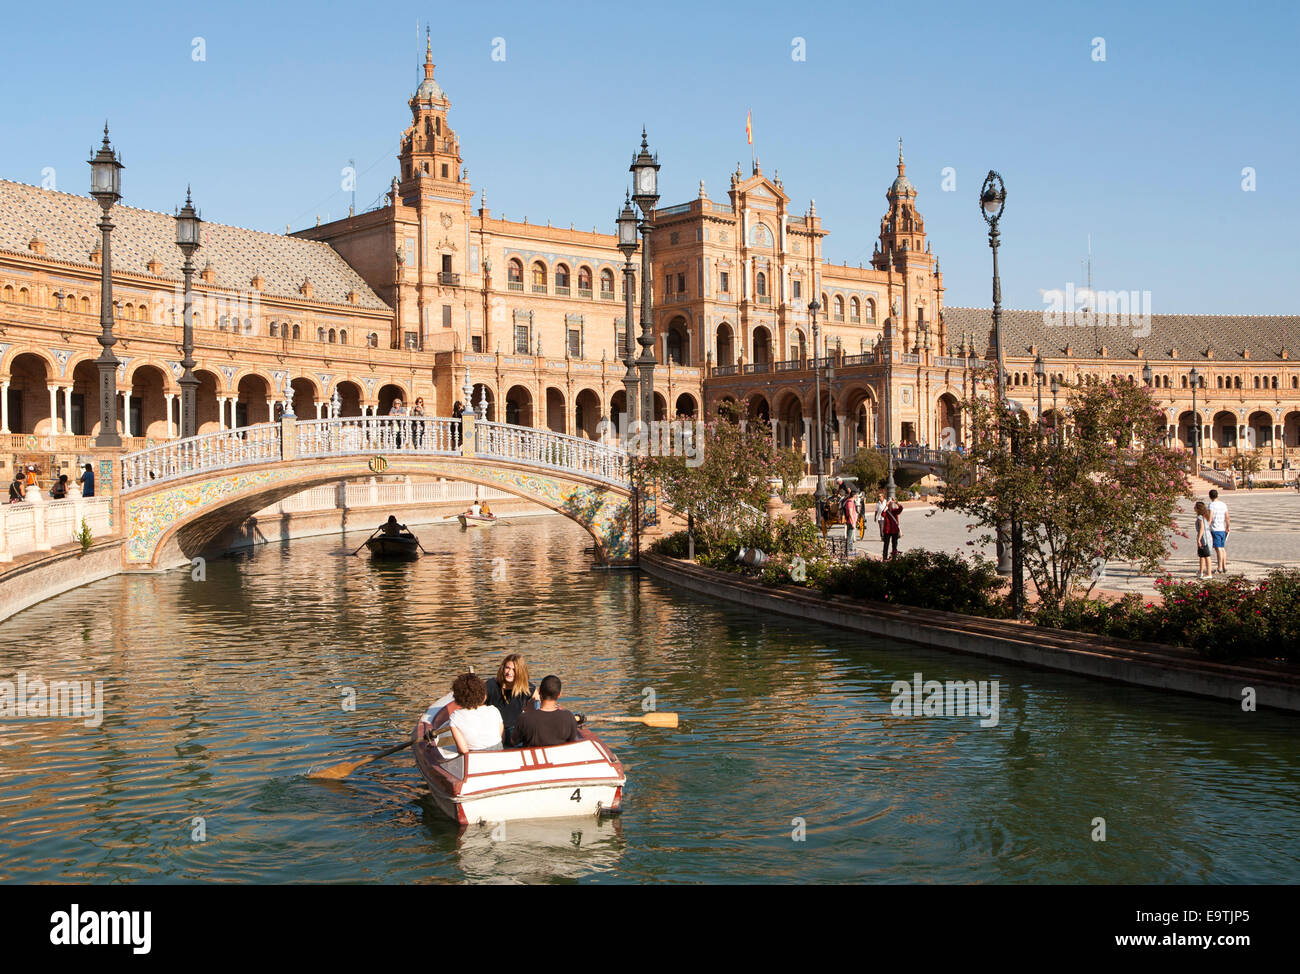 seville buildings stockfotos seville buildings bilder seite 23 alamy. Black Bedroom Furniture Sets. Home Design Ideas